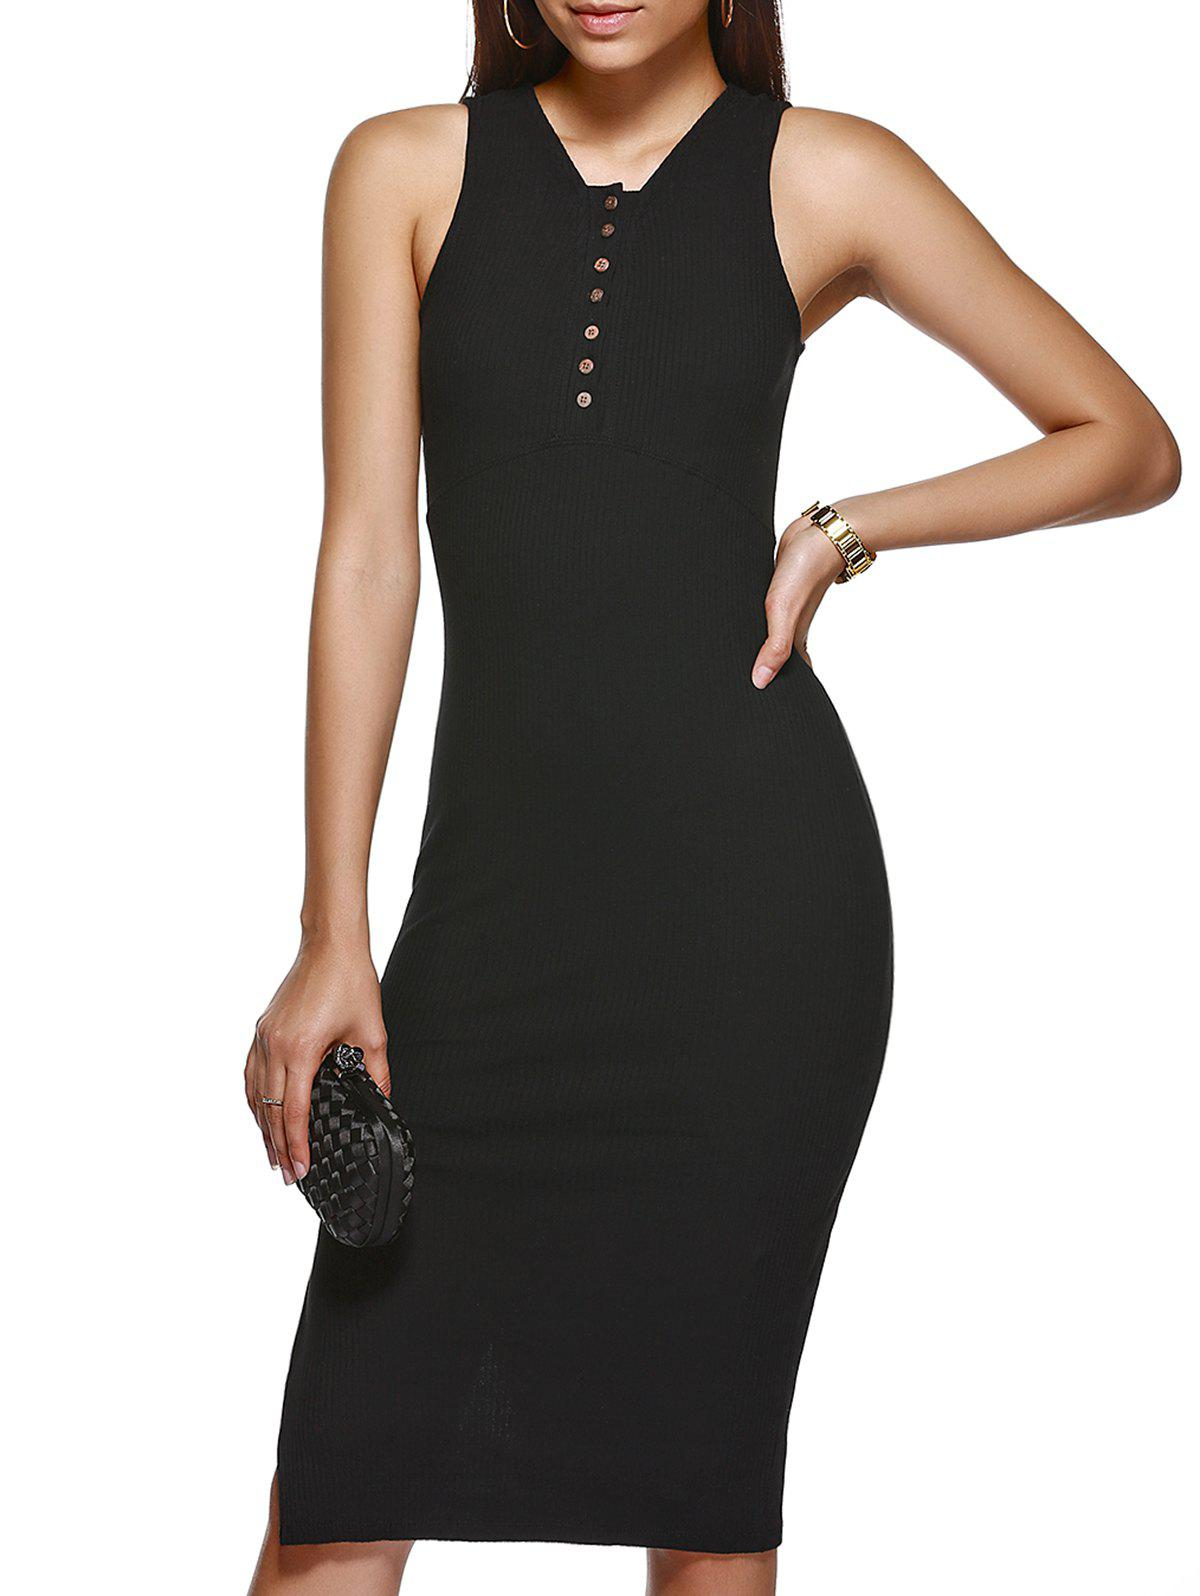 Trendy Solid Color Buttoned V Neck Bodycon Dress - BLACK ONE SIZE(FIT SIZE XS TO M)